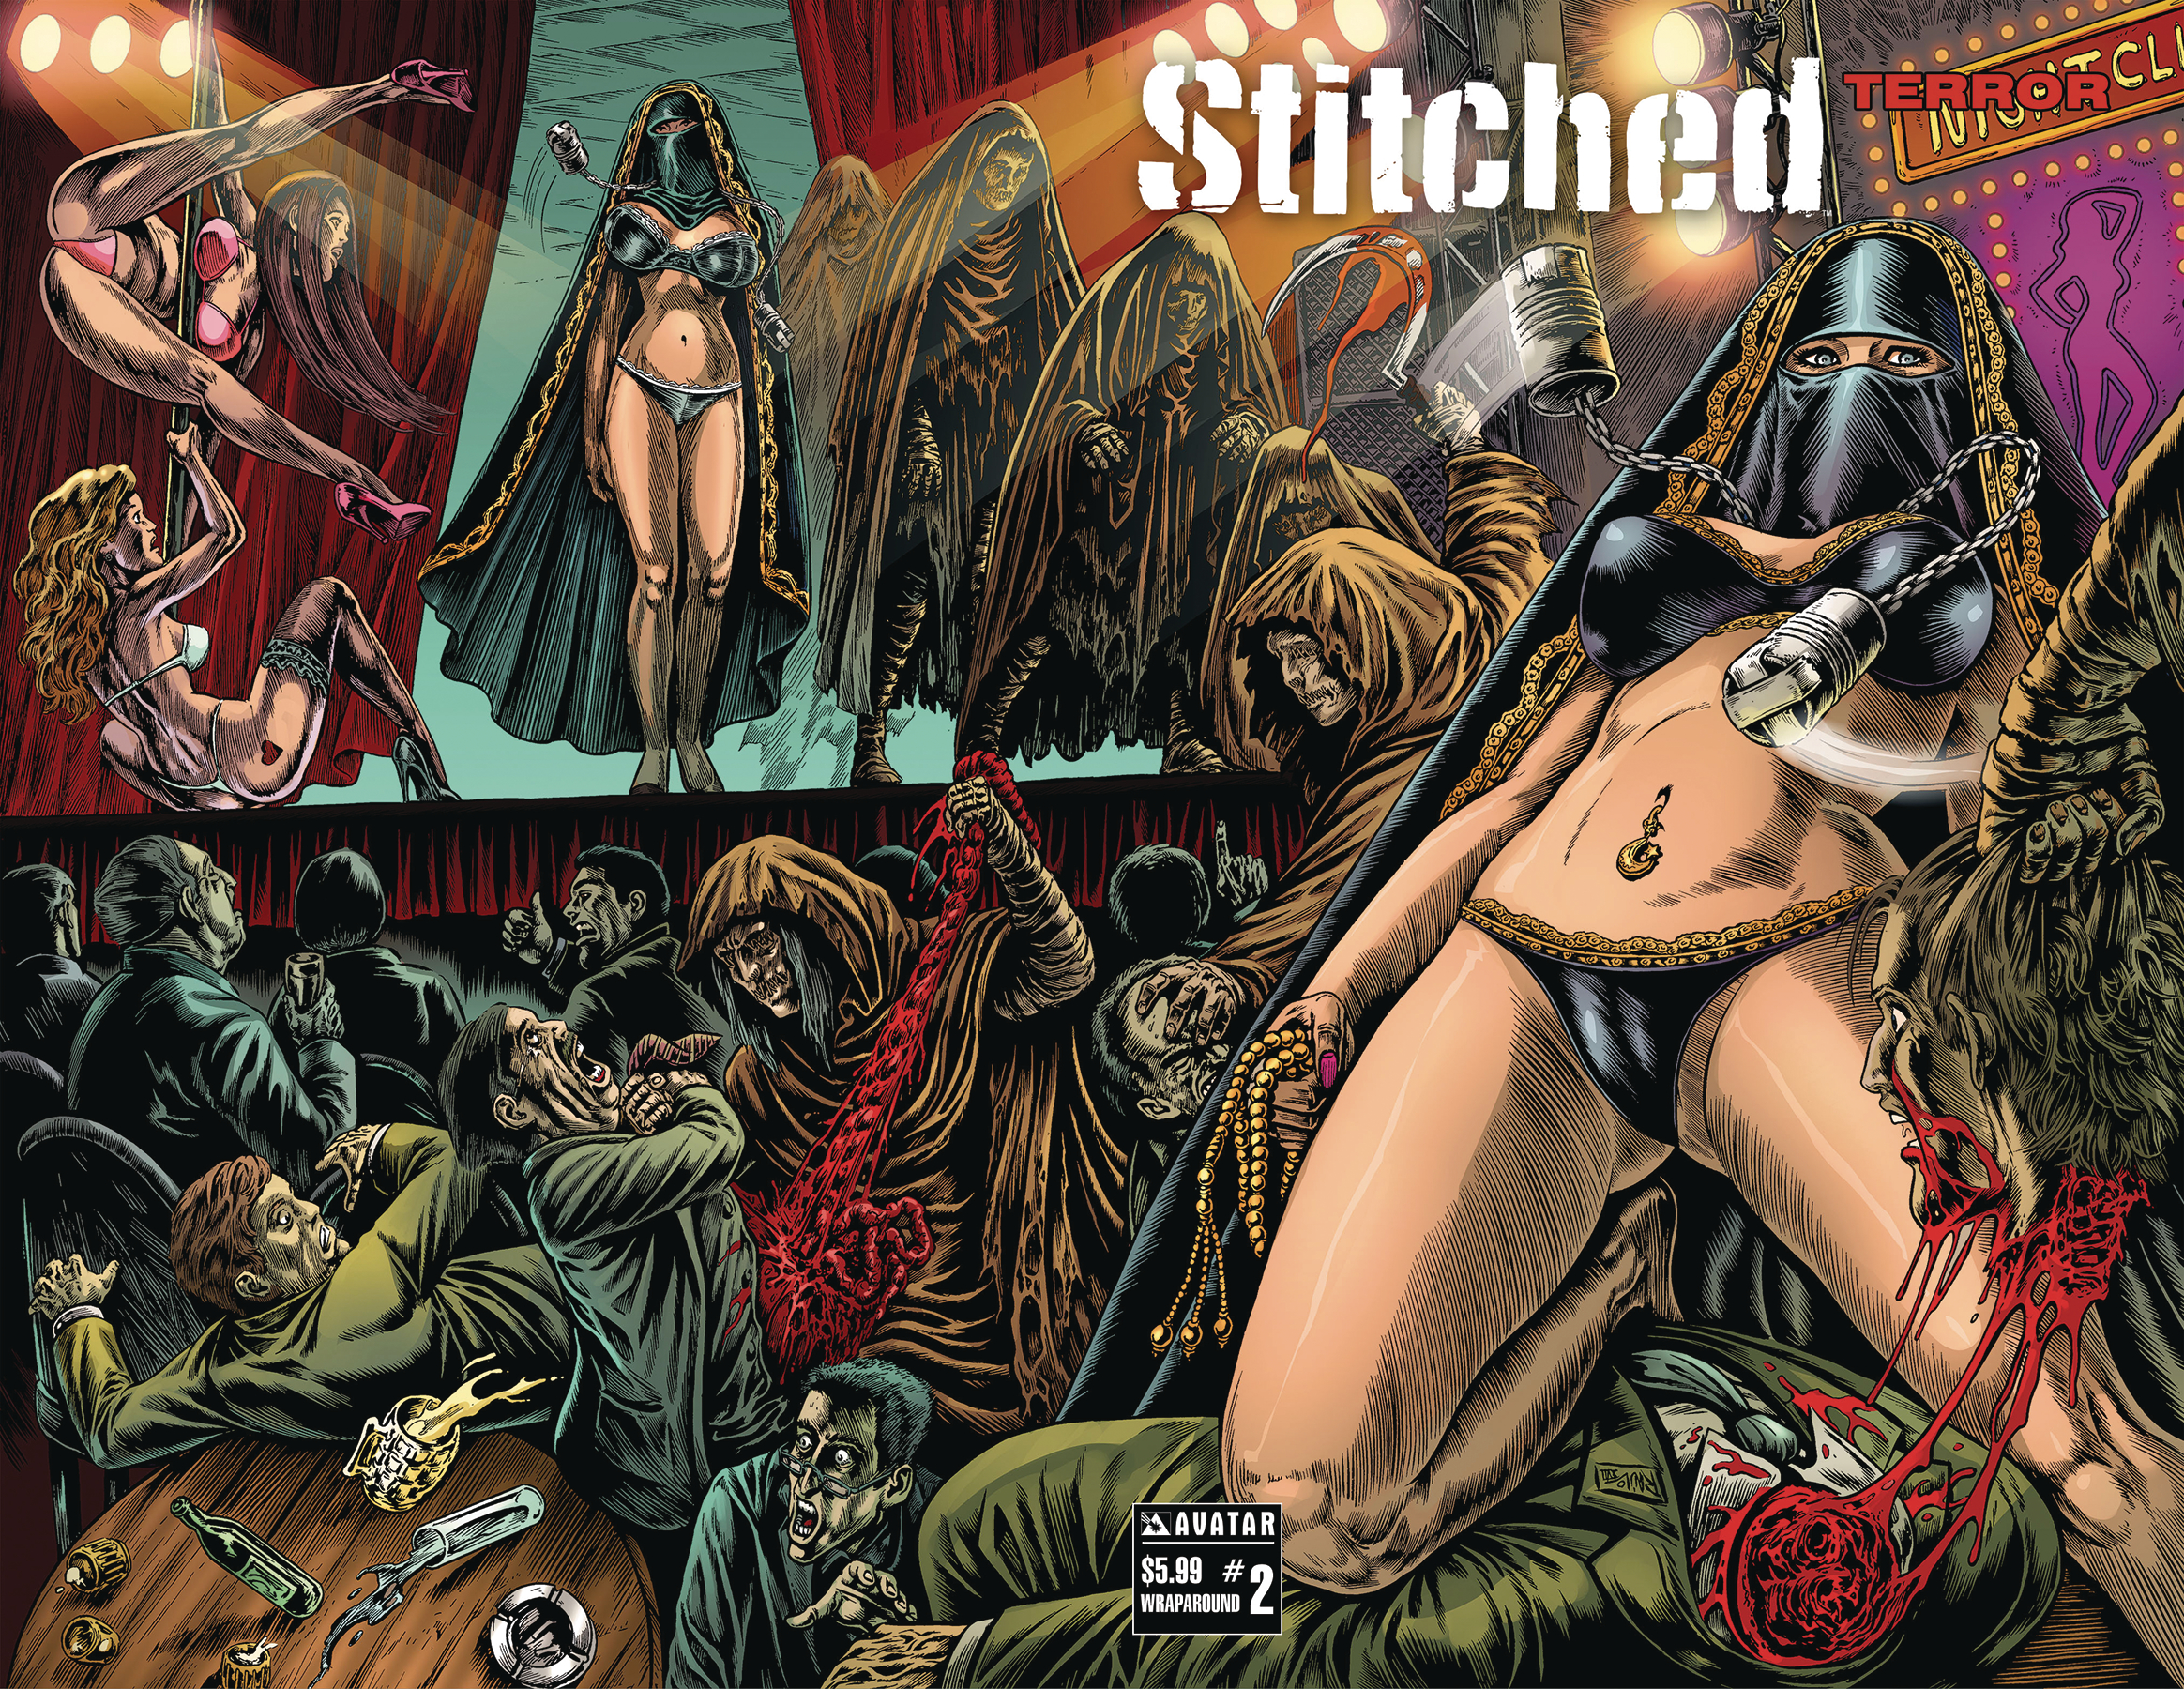 STITCHED TERROR #2 WRAP (RES) (MR)